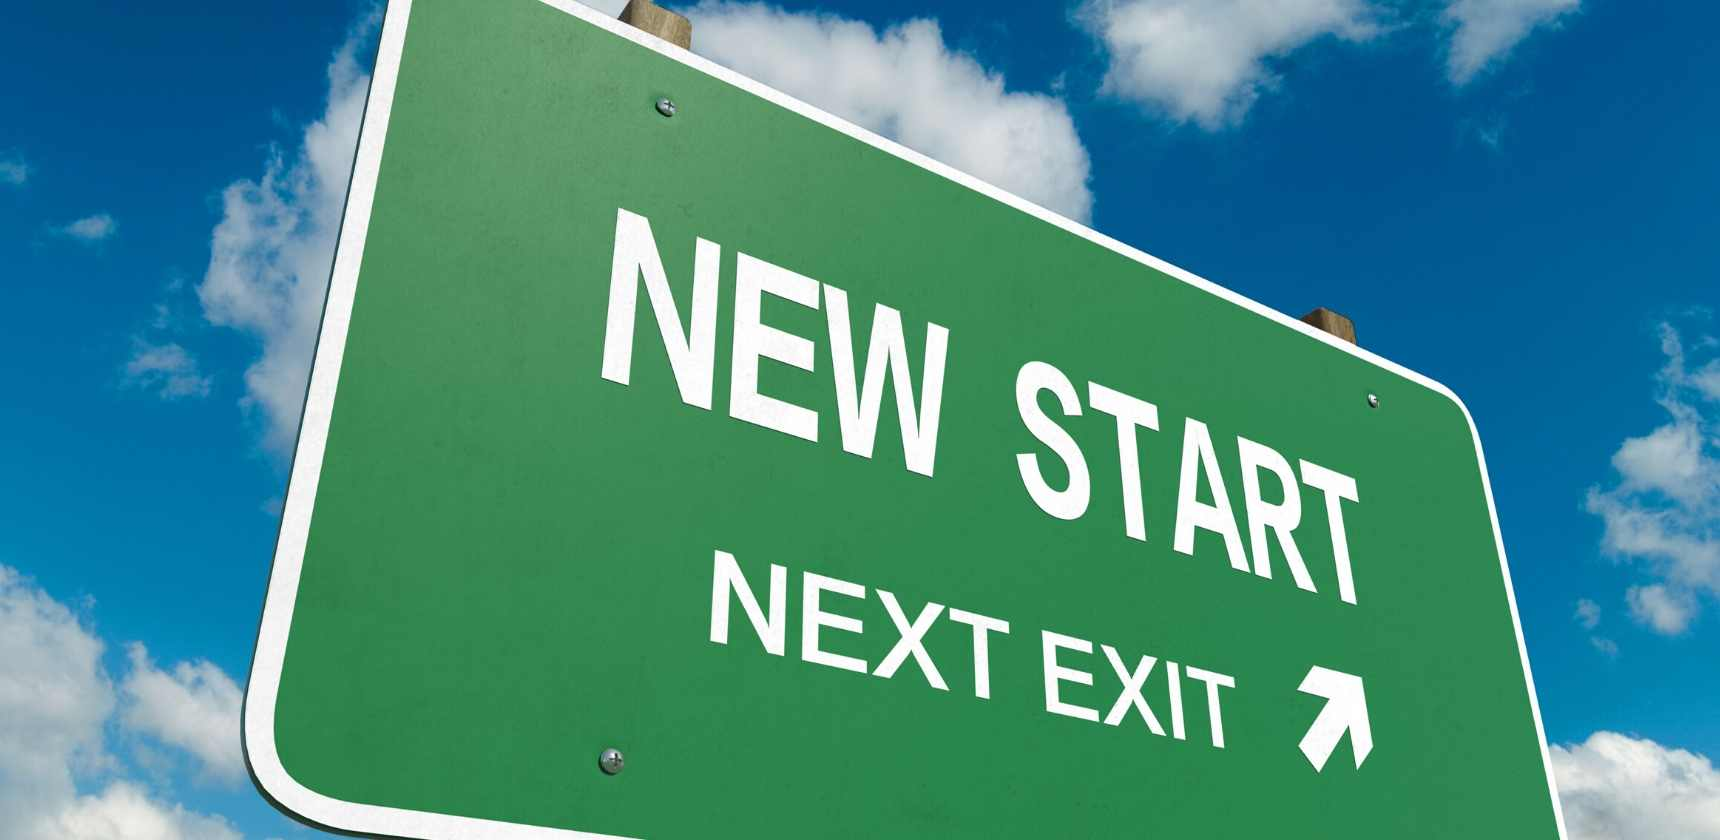 road sign showing new start